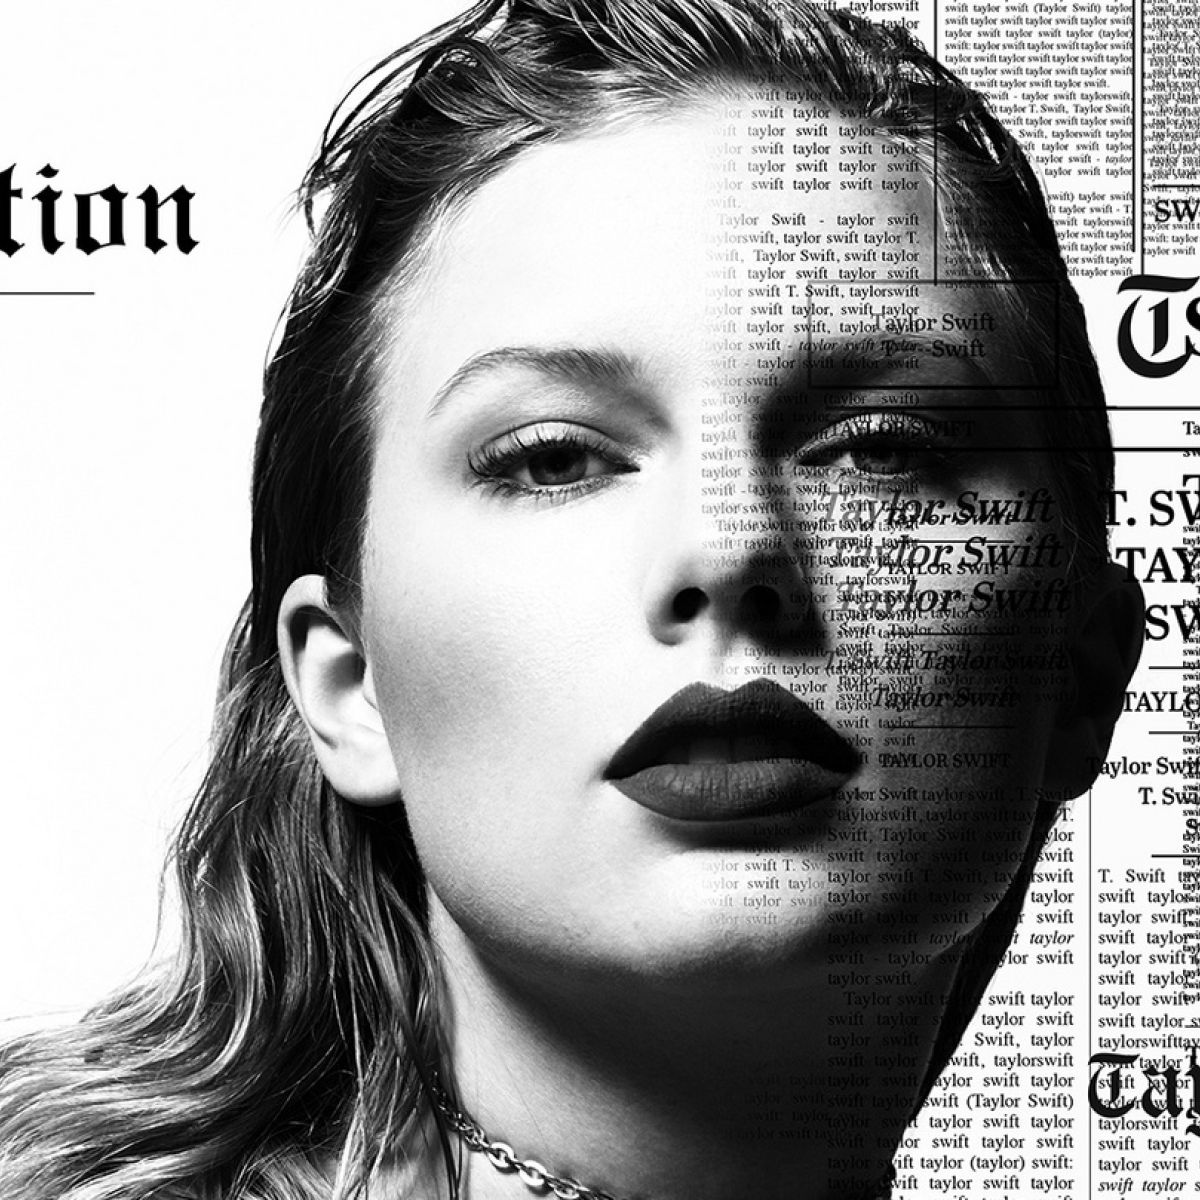 Bad Blood Quotes Taylor Swift Taylor Swift Reputation Clever Songwriting Beauty In